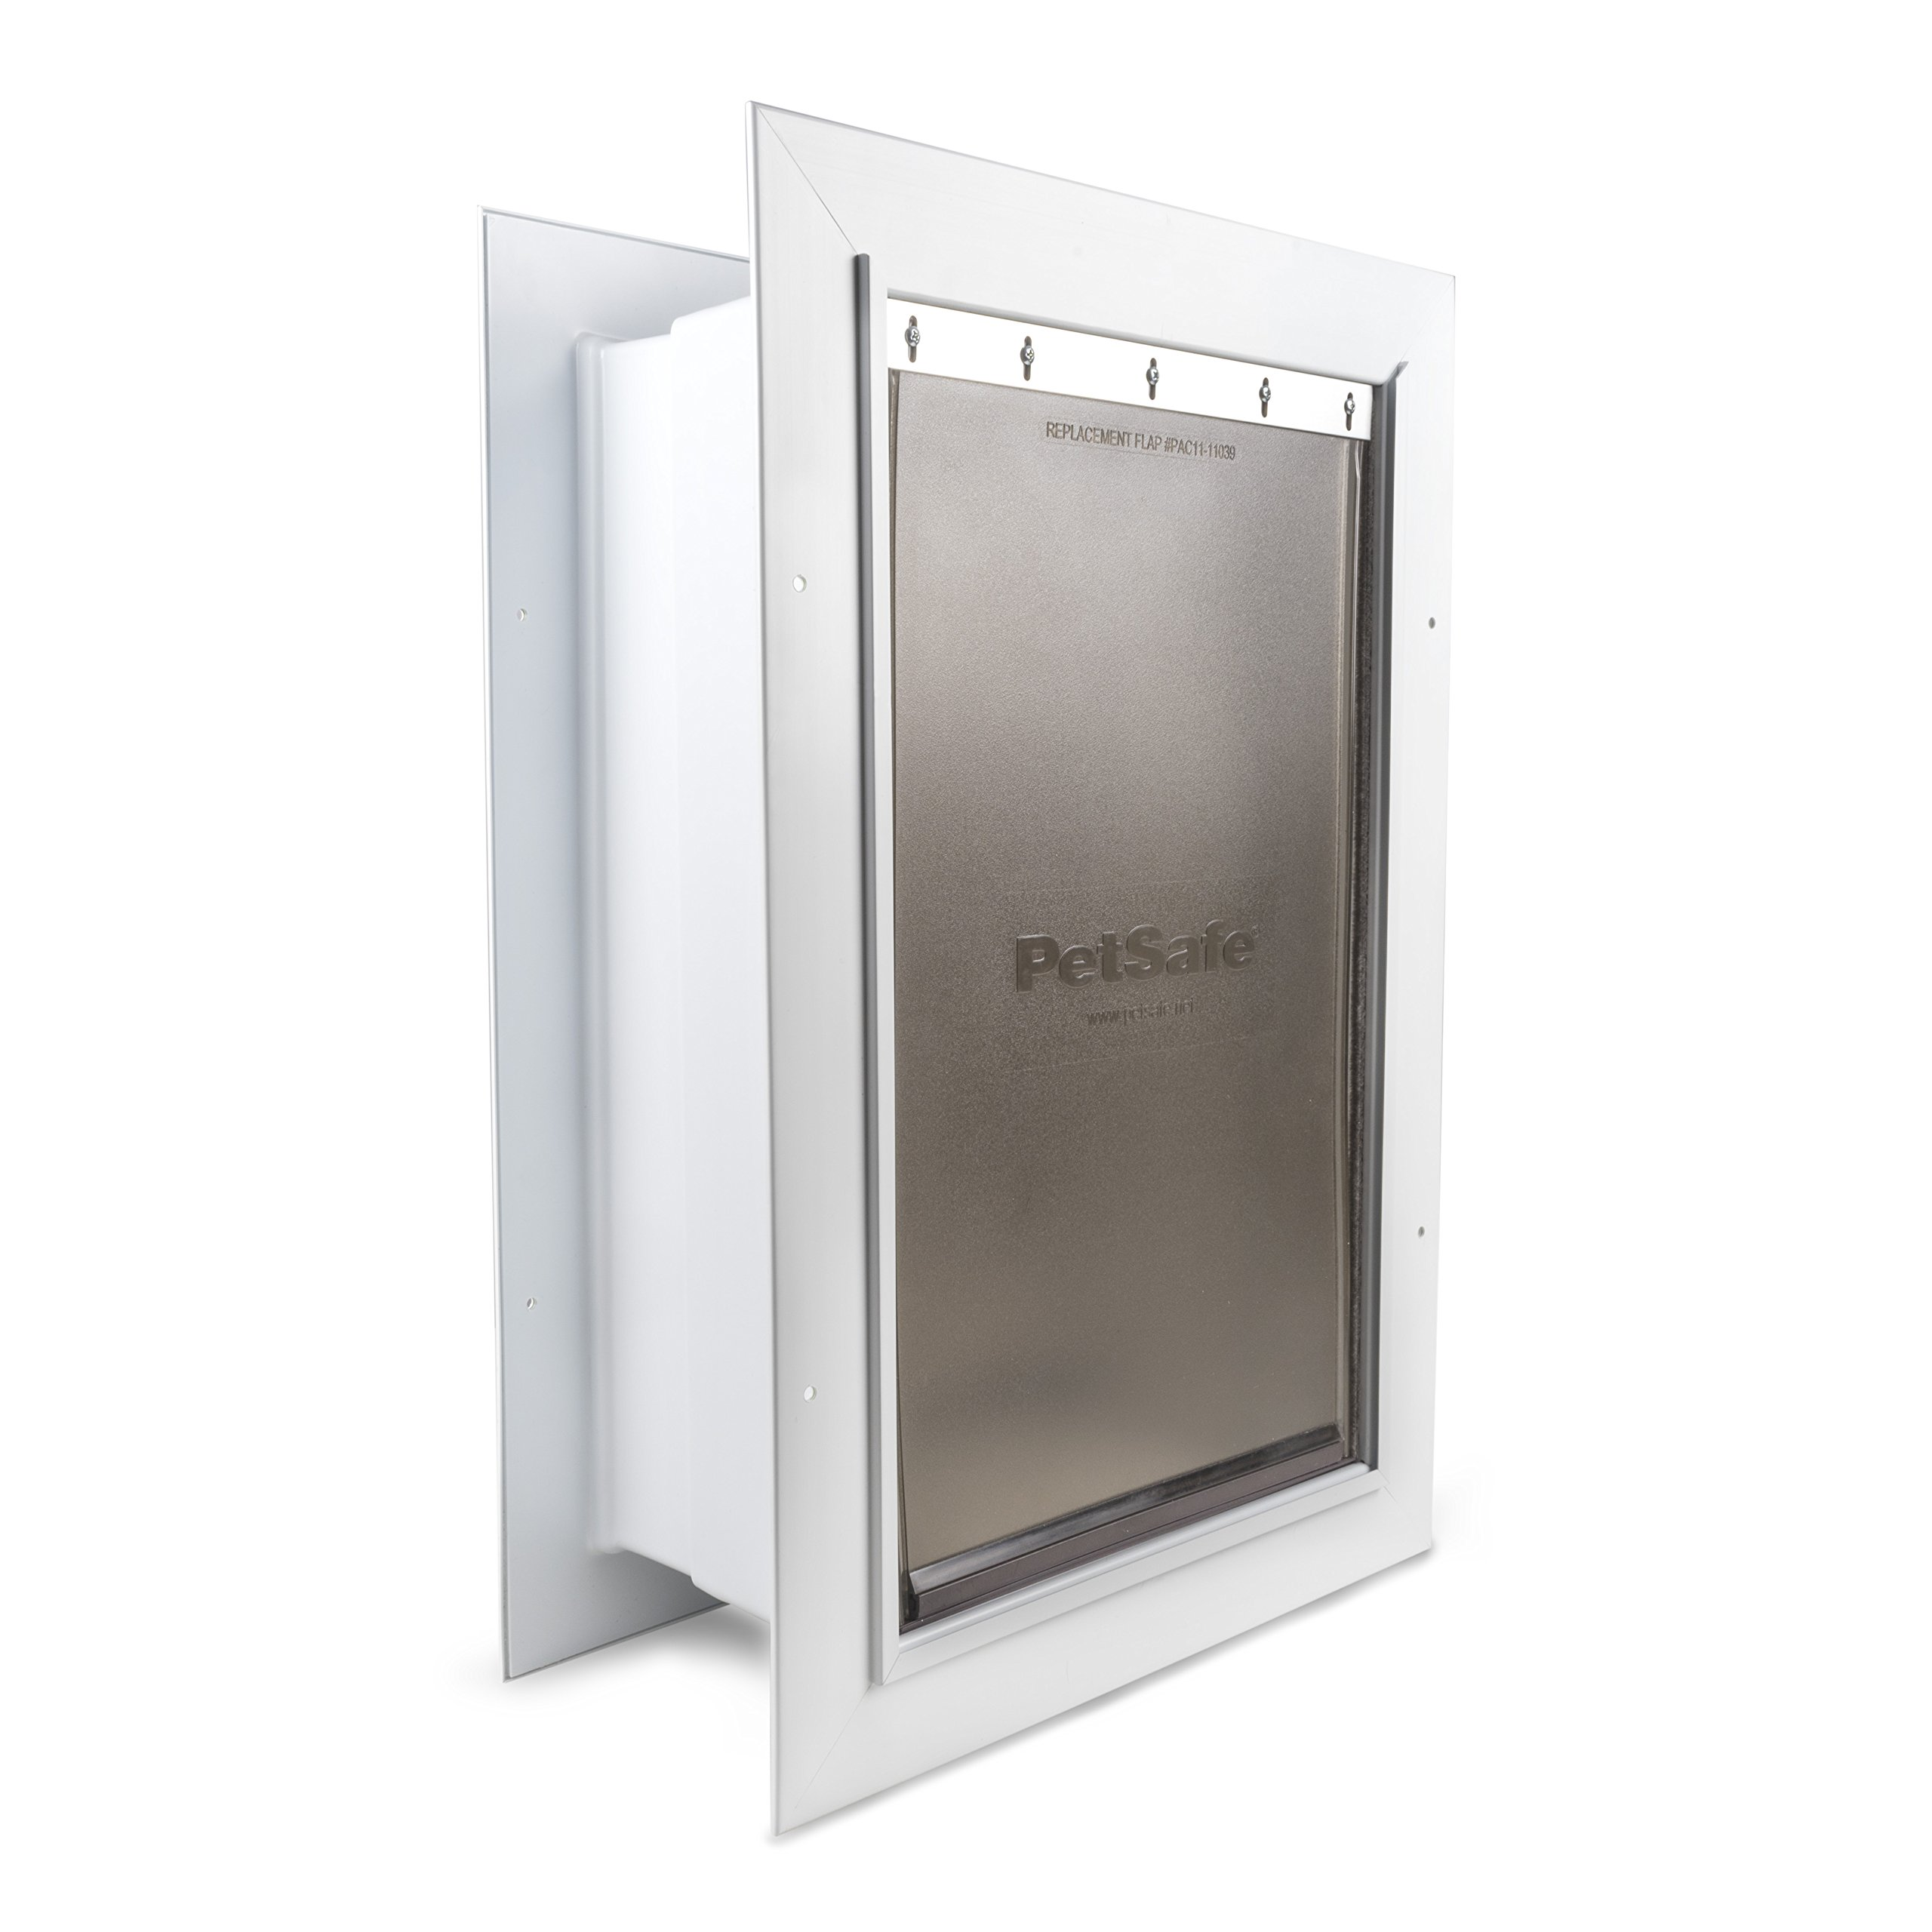 PetSafe Wall Entry Pet Door with Telescoping Tunnel, Medium, for Pets Up to 40 Lb, White, Made in The USA